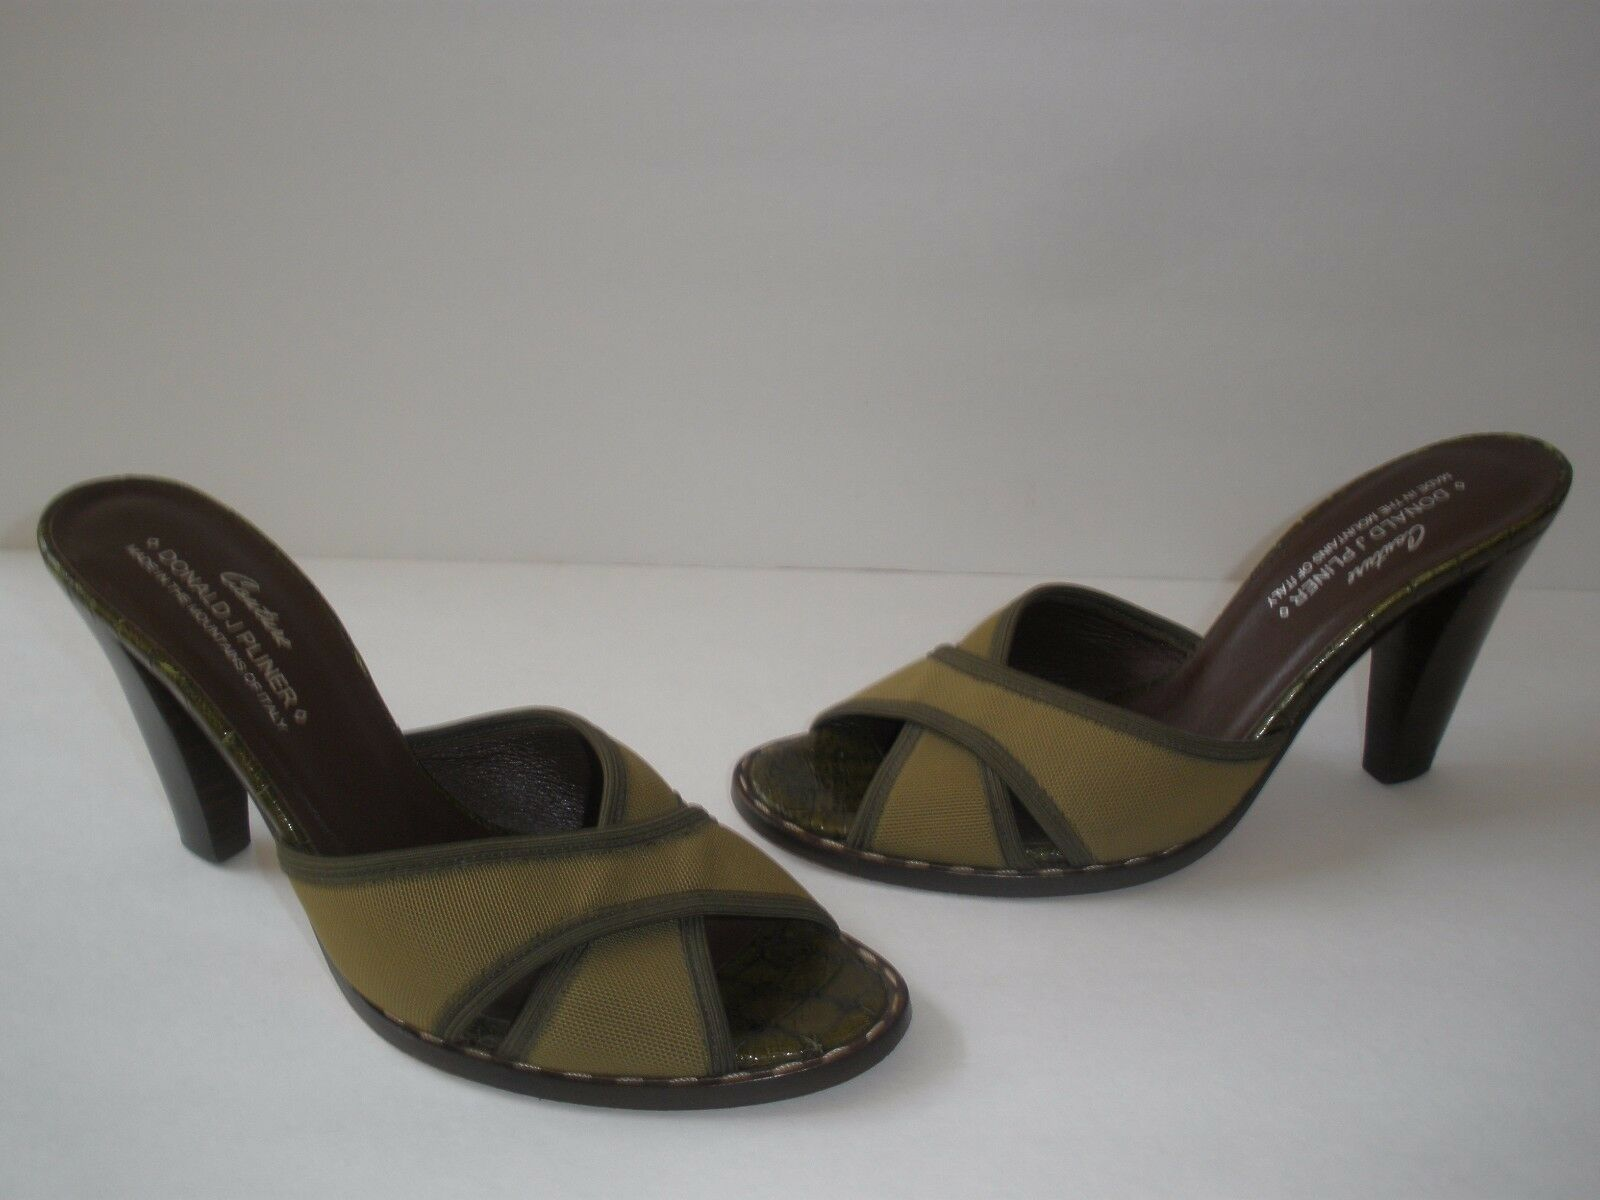 @ DONALD J.PLINER COUTURE LEATHER TEXTILE SANDAL 3 HEEL US 6 HOT MADE IN ITALY